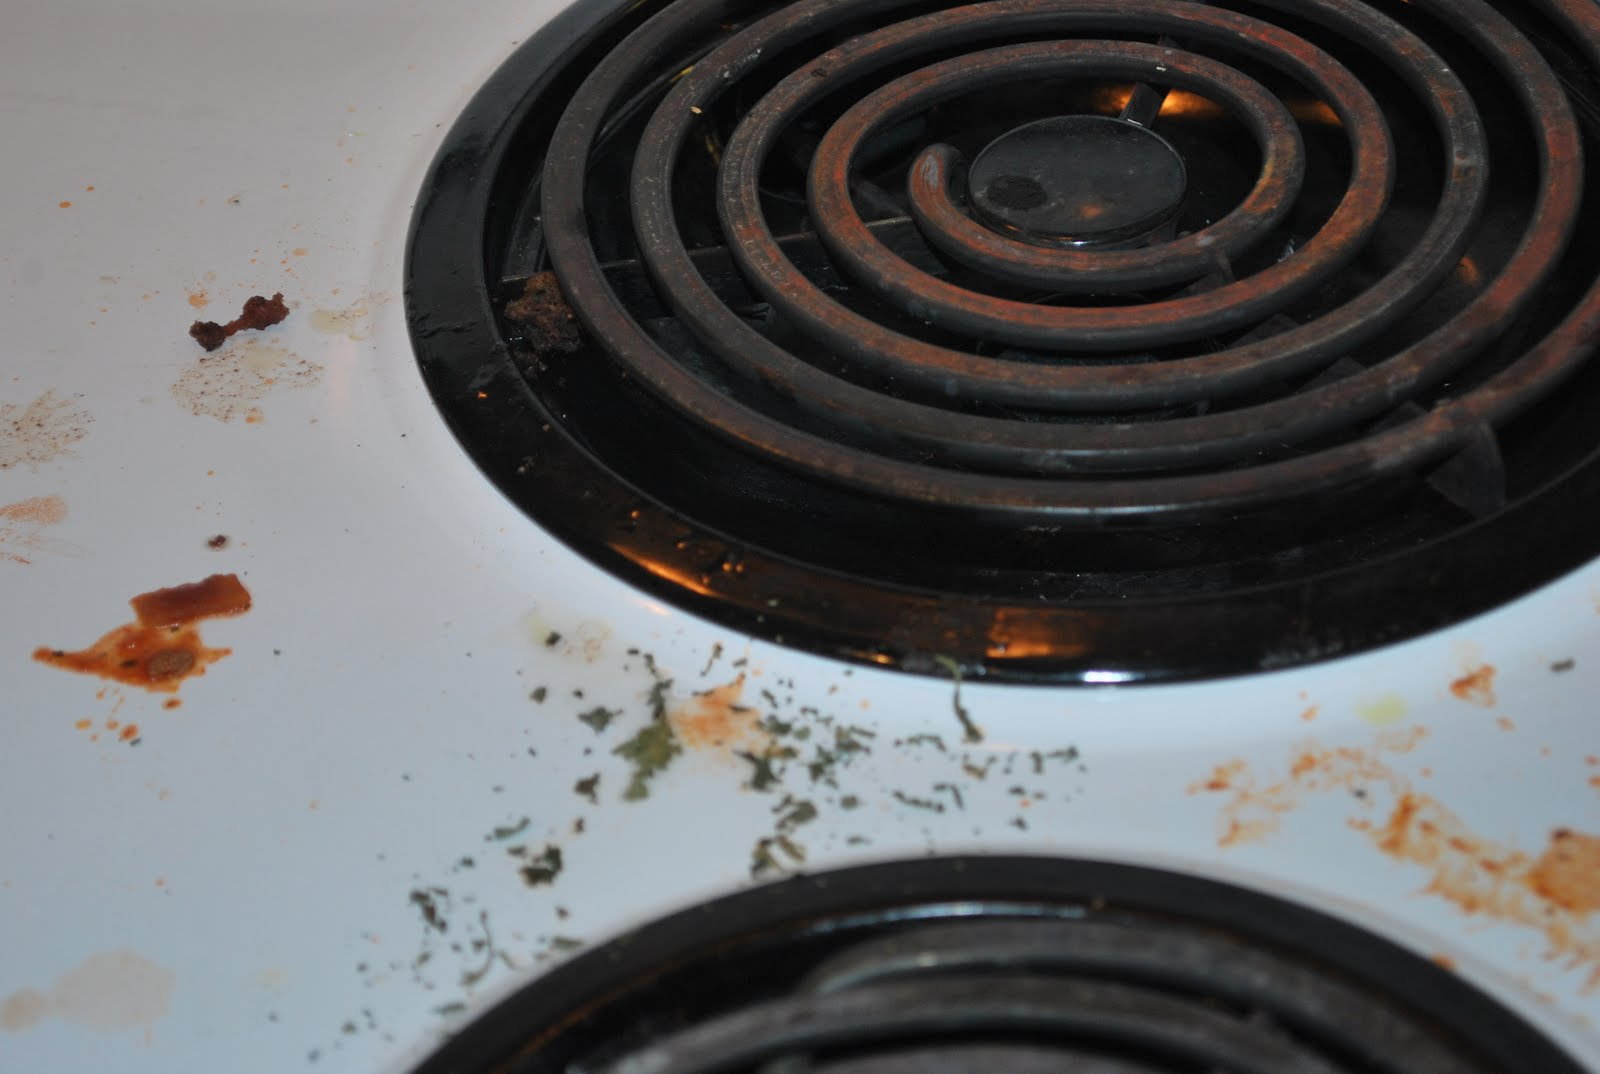 Off The Cuff Cooking Chemical Free Range Oven Cleaning A